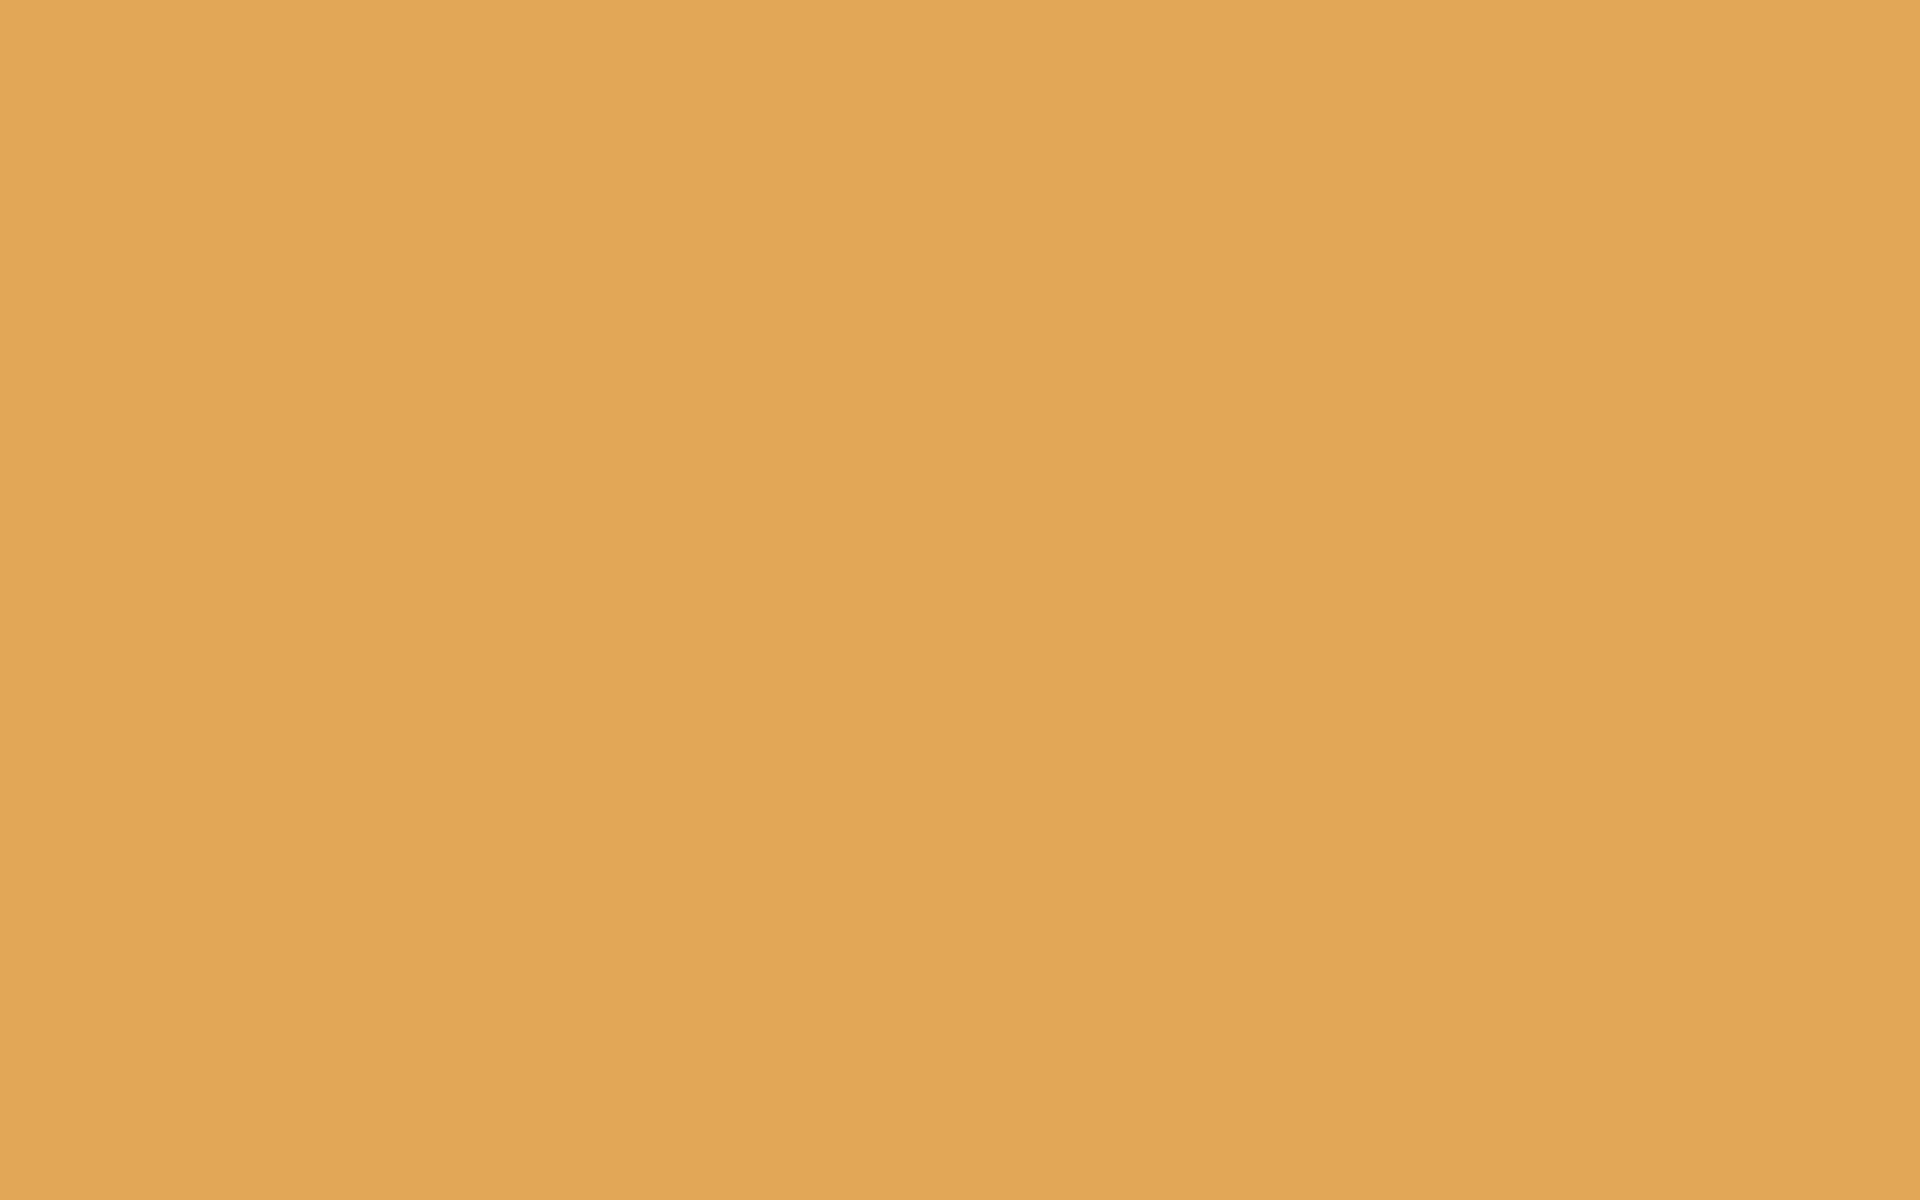 1920x1200 Indian Yellow Solid Color Background